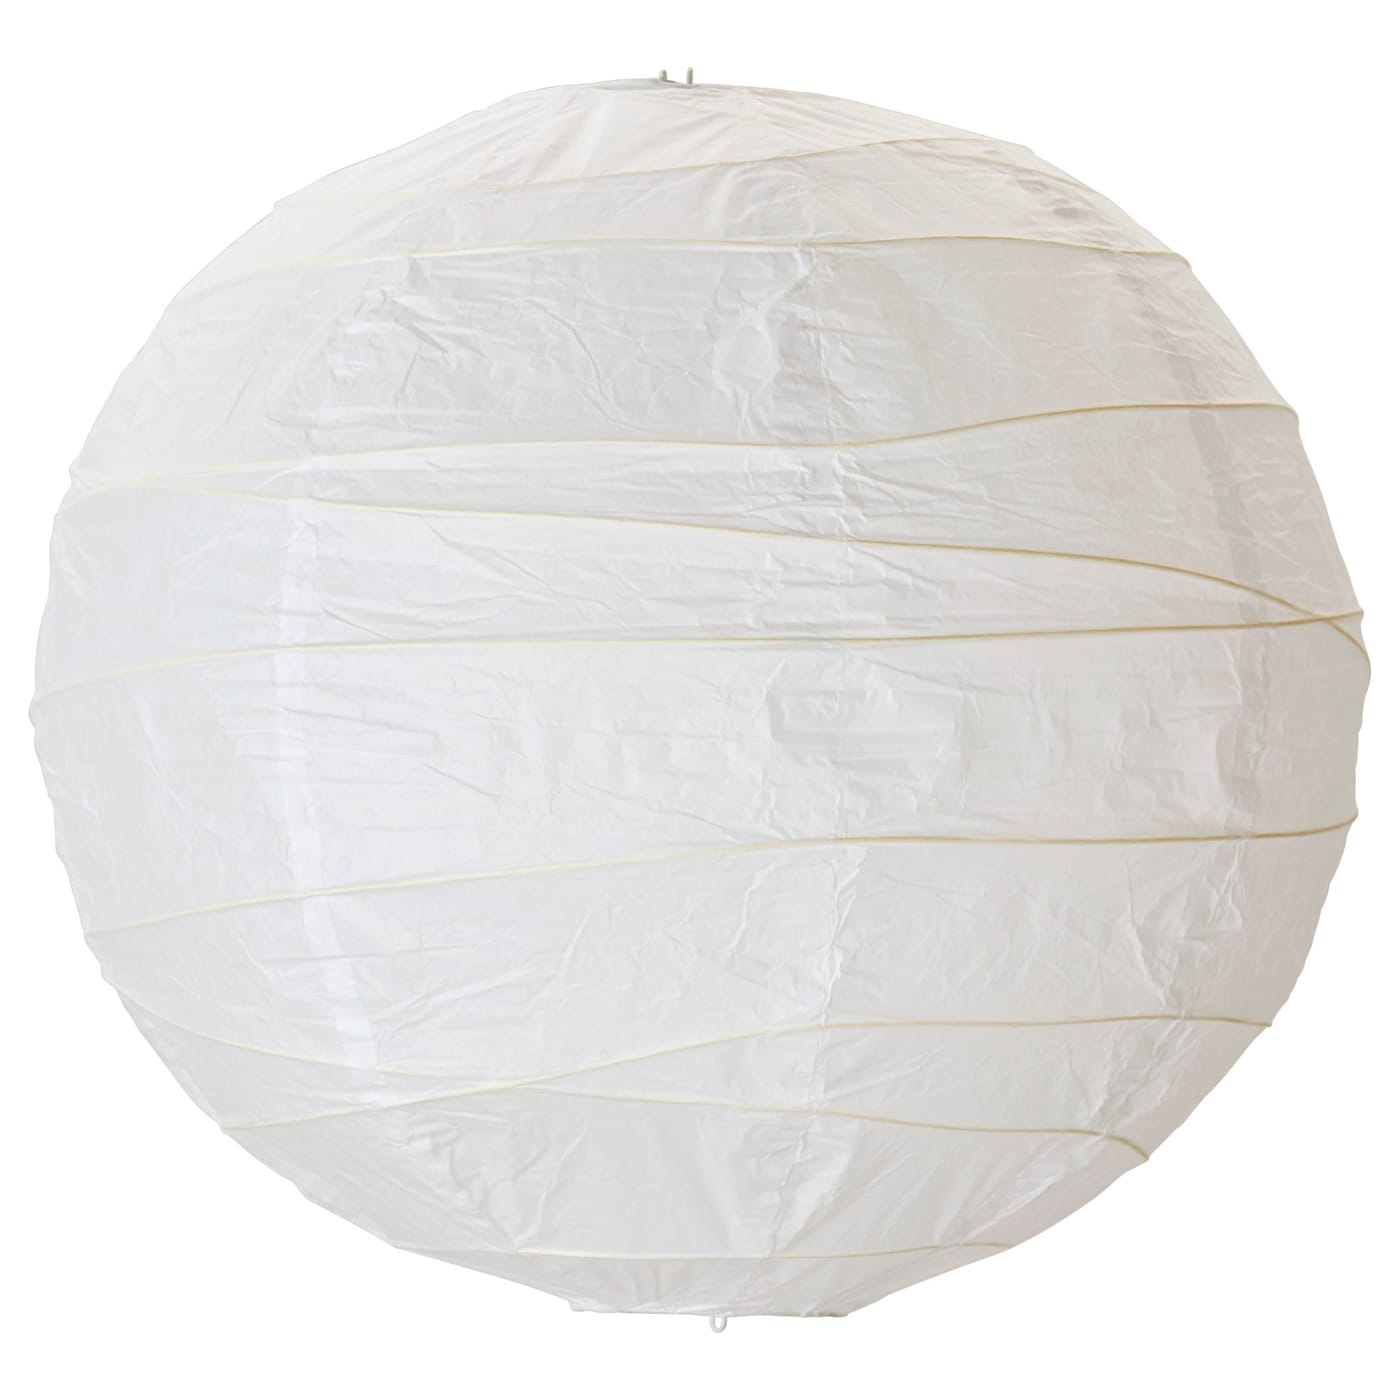 Pendant Lamp Shade Regolit White